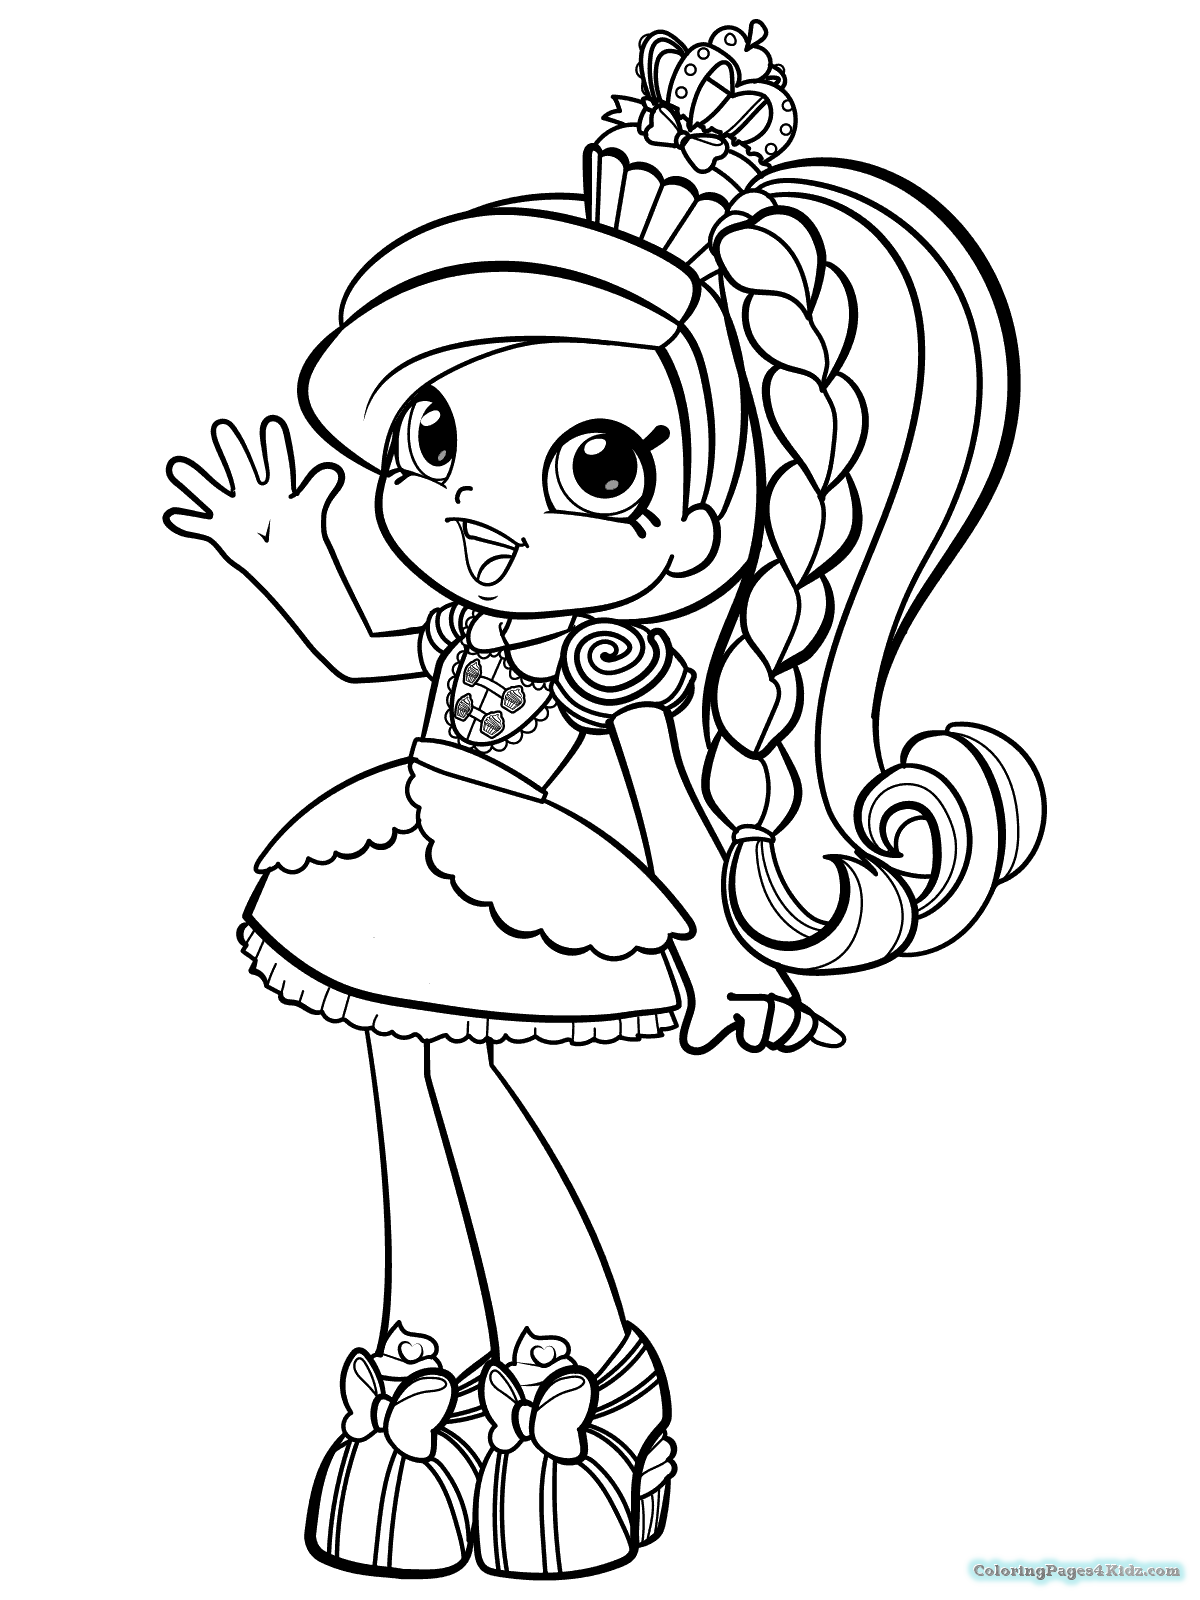 ballerina coloring pages shopkin coloring pages coloring pages for kids coloring sheets